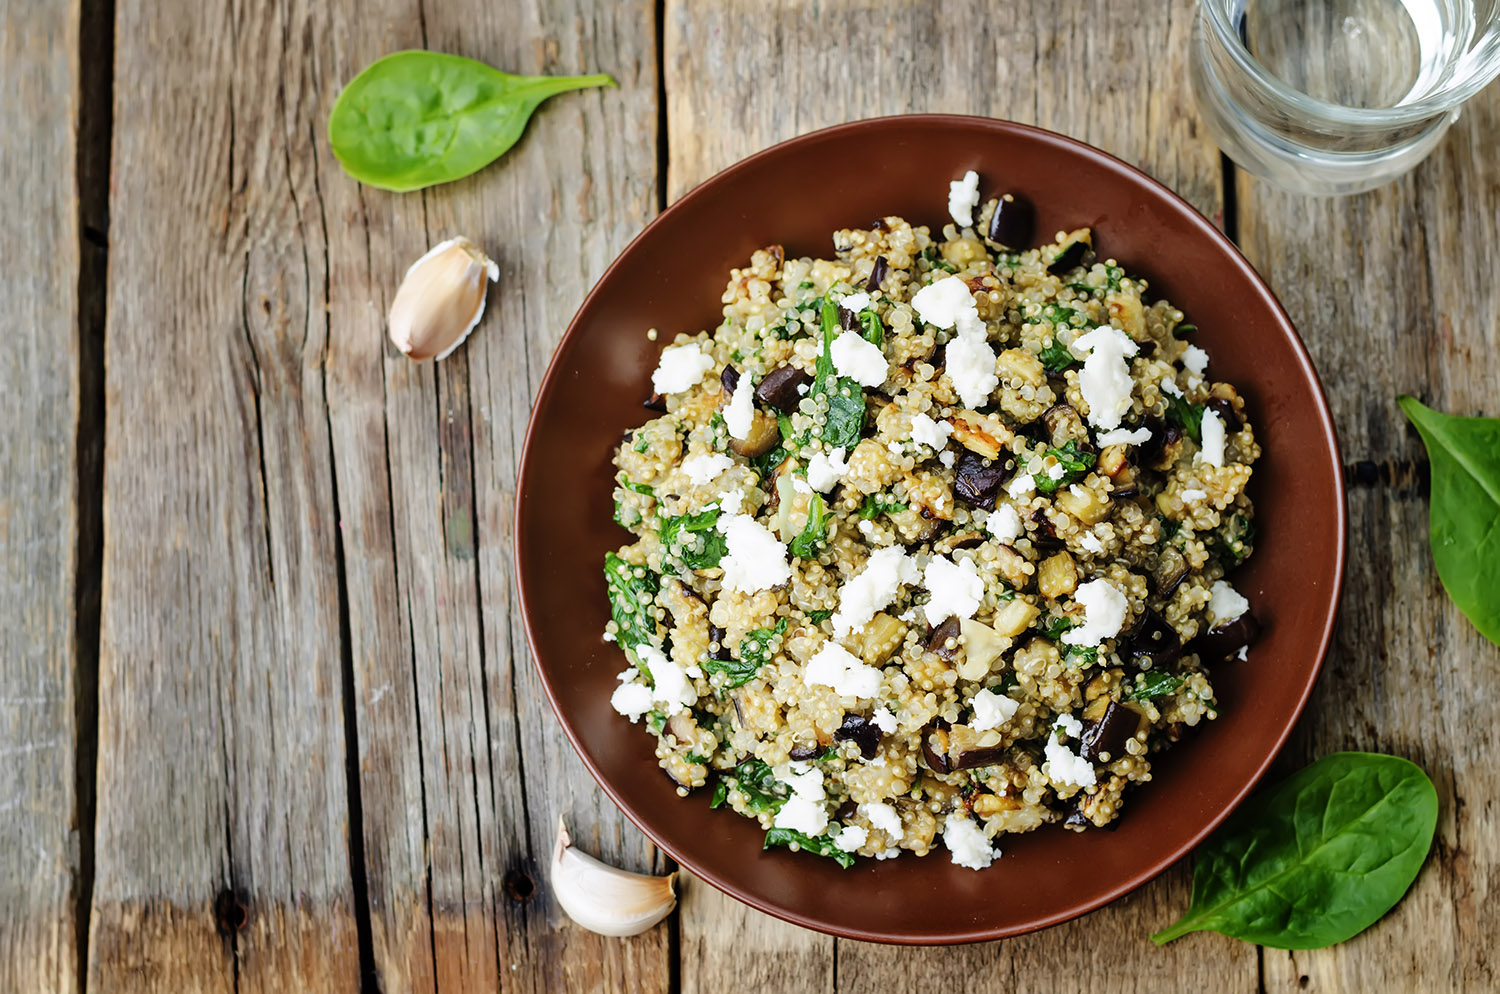 <p>Cooking Quinoa For Salad</p>